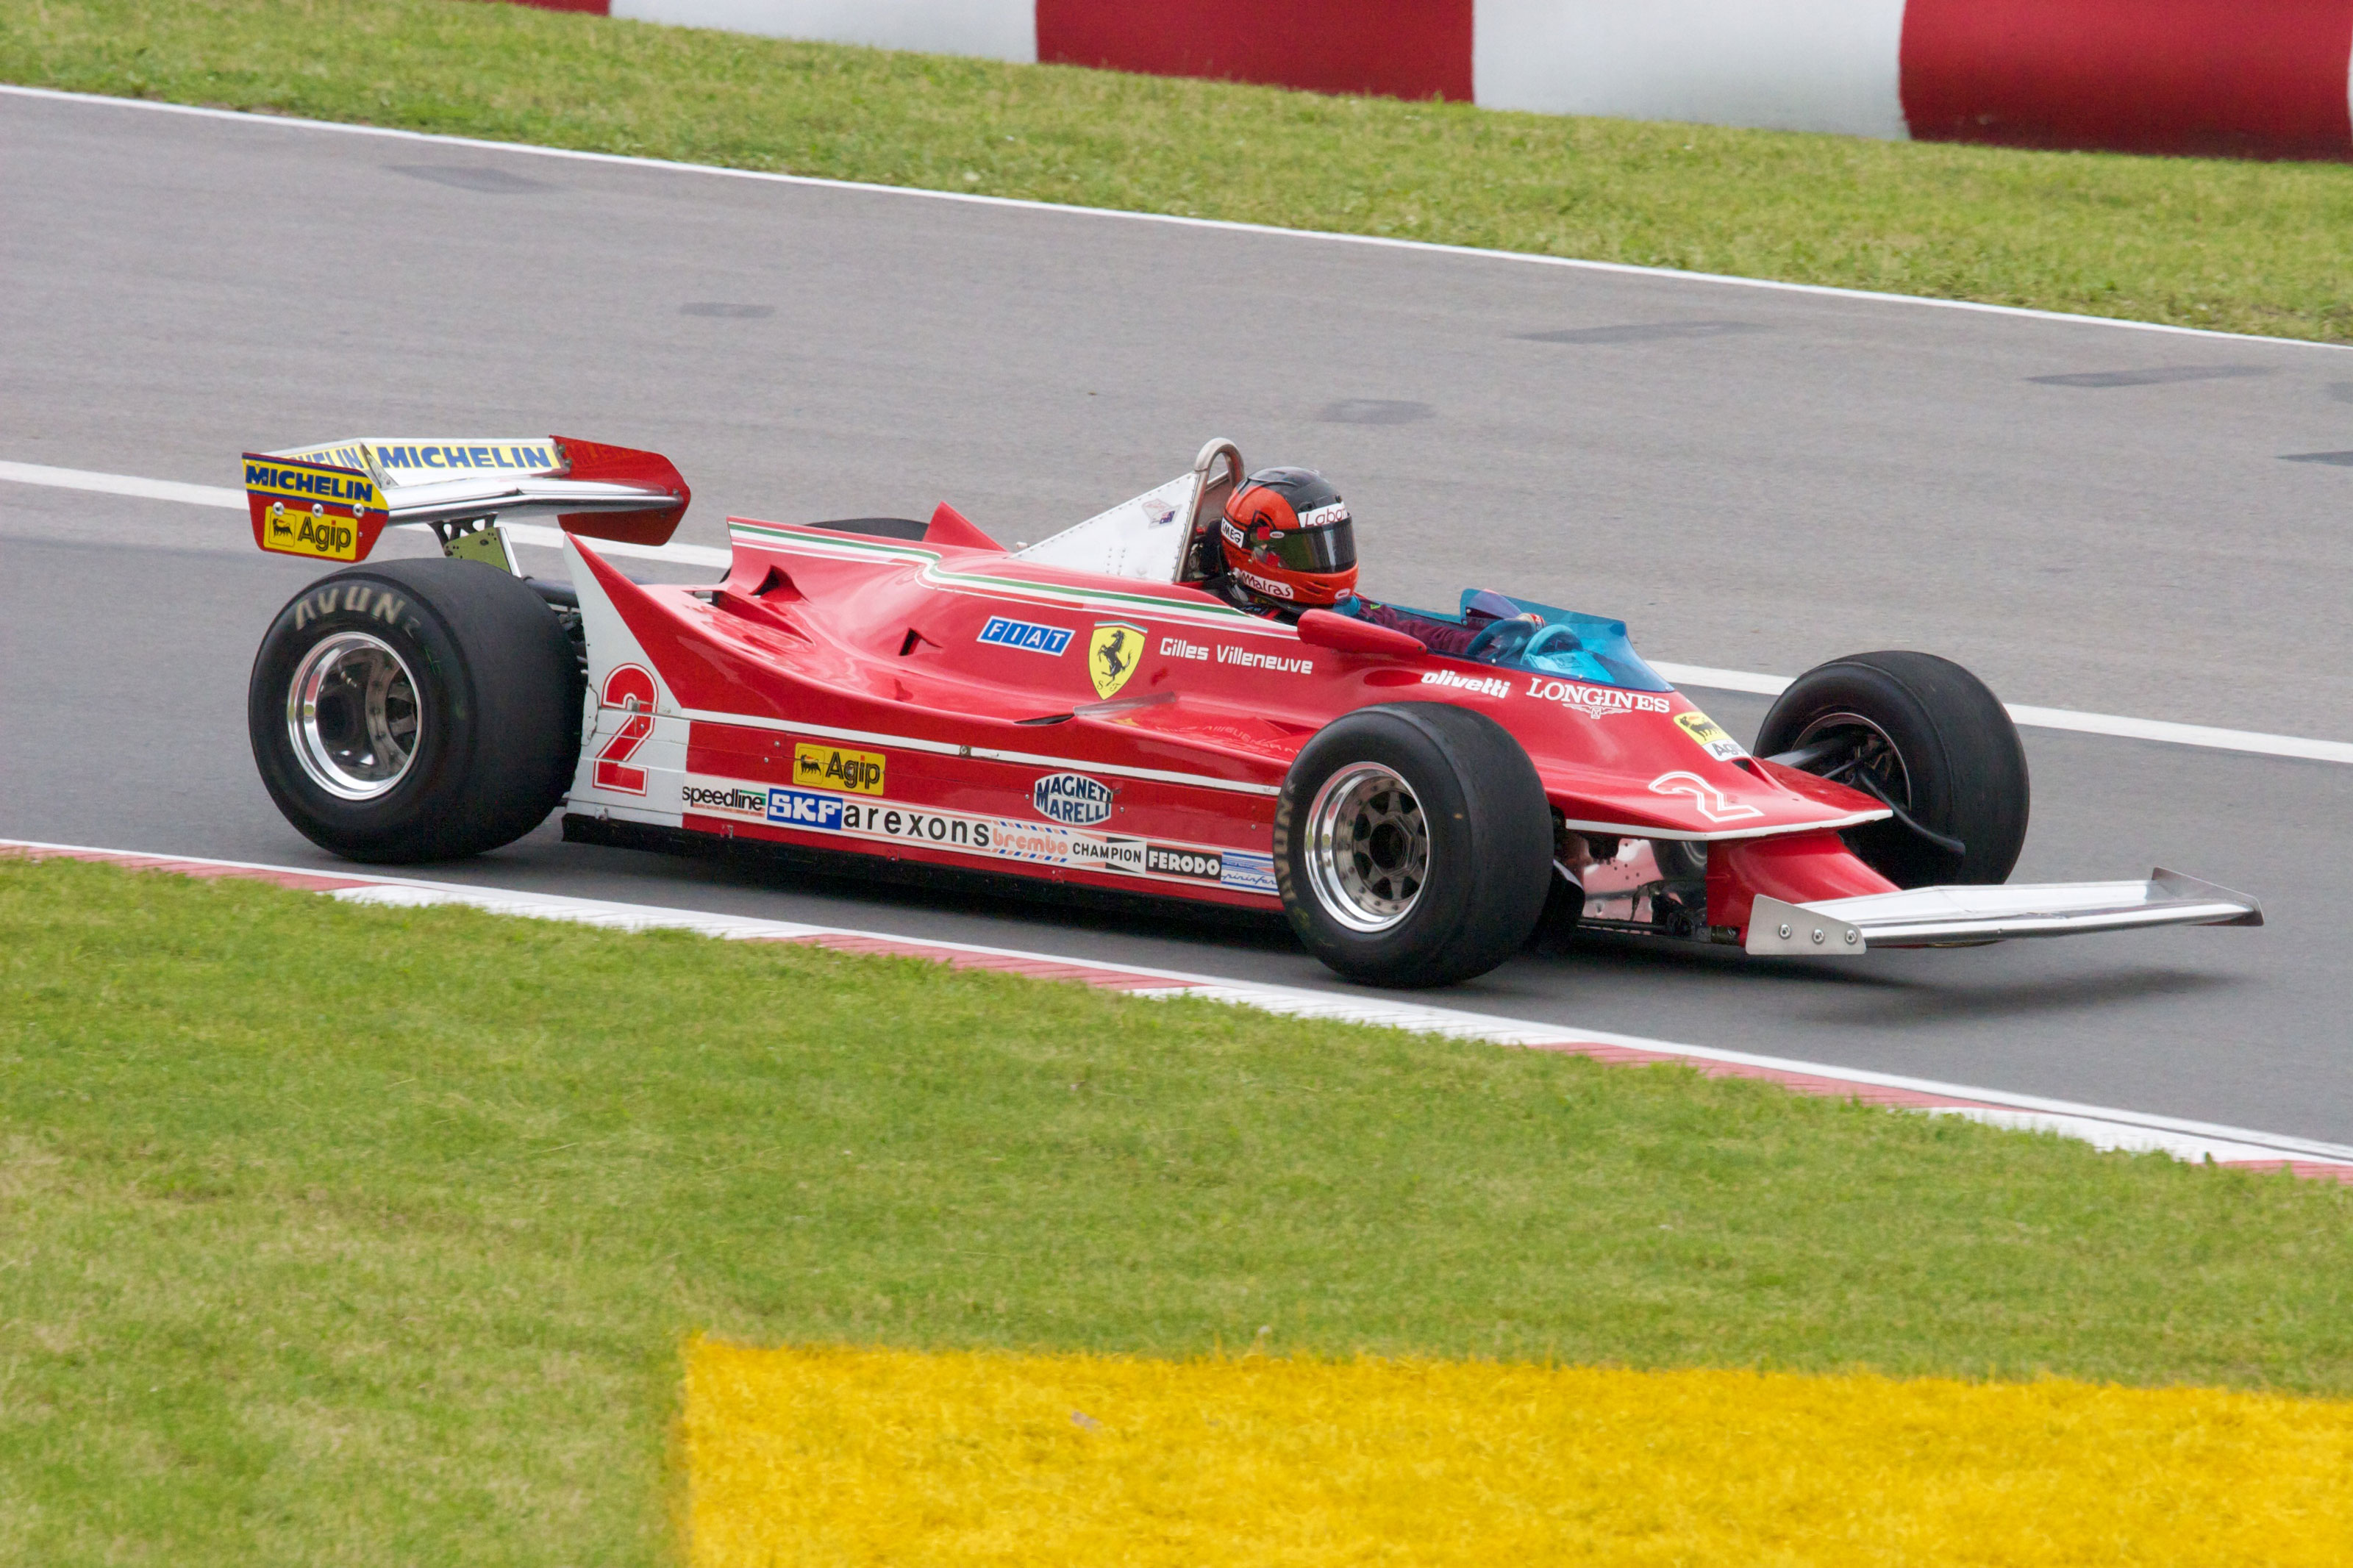 Gilles Villeneuve's Ferrari 312T5 at the Histric race during the 2010 Canadian GP